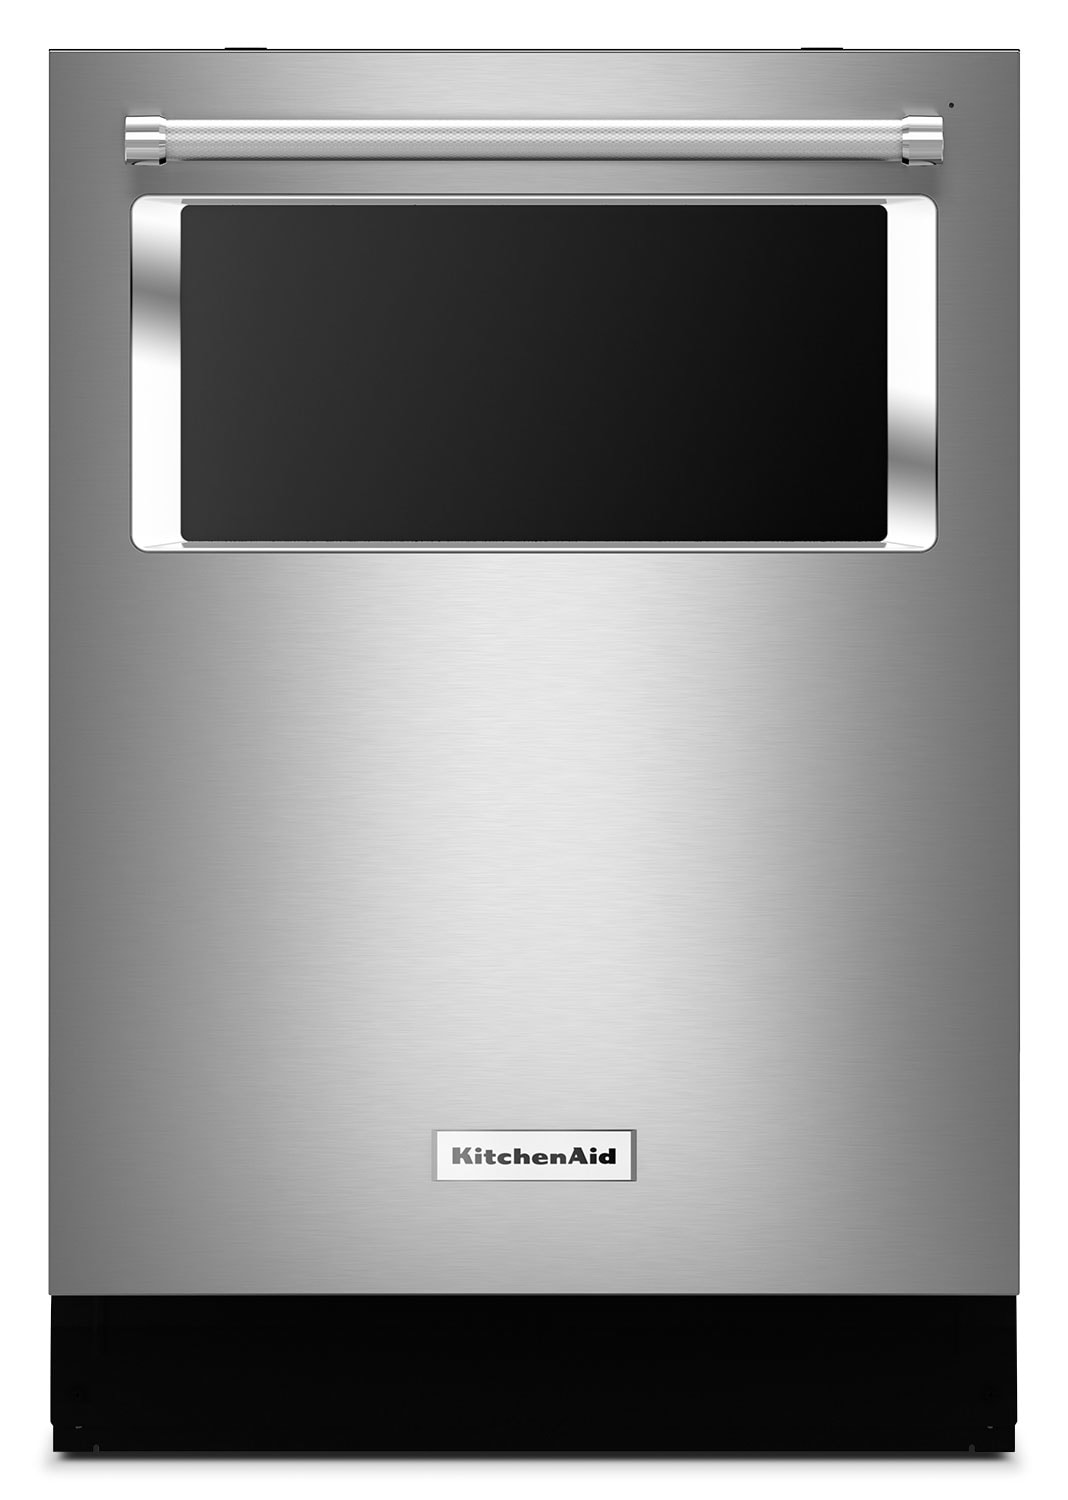 KitchenAid Built-In Dishwasher with Window – KDTM384ESS